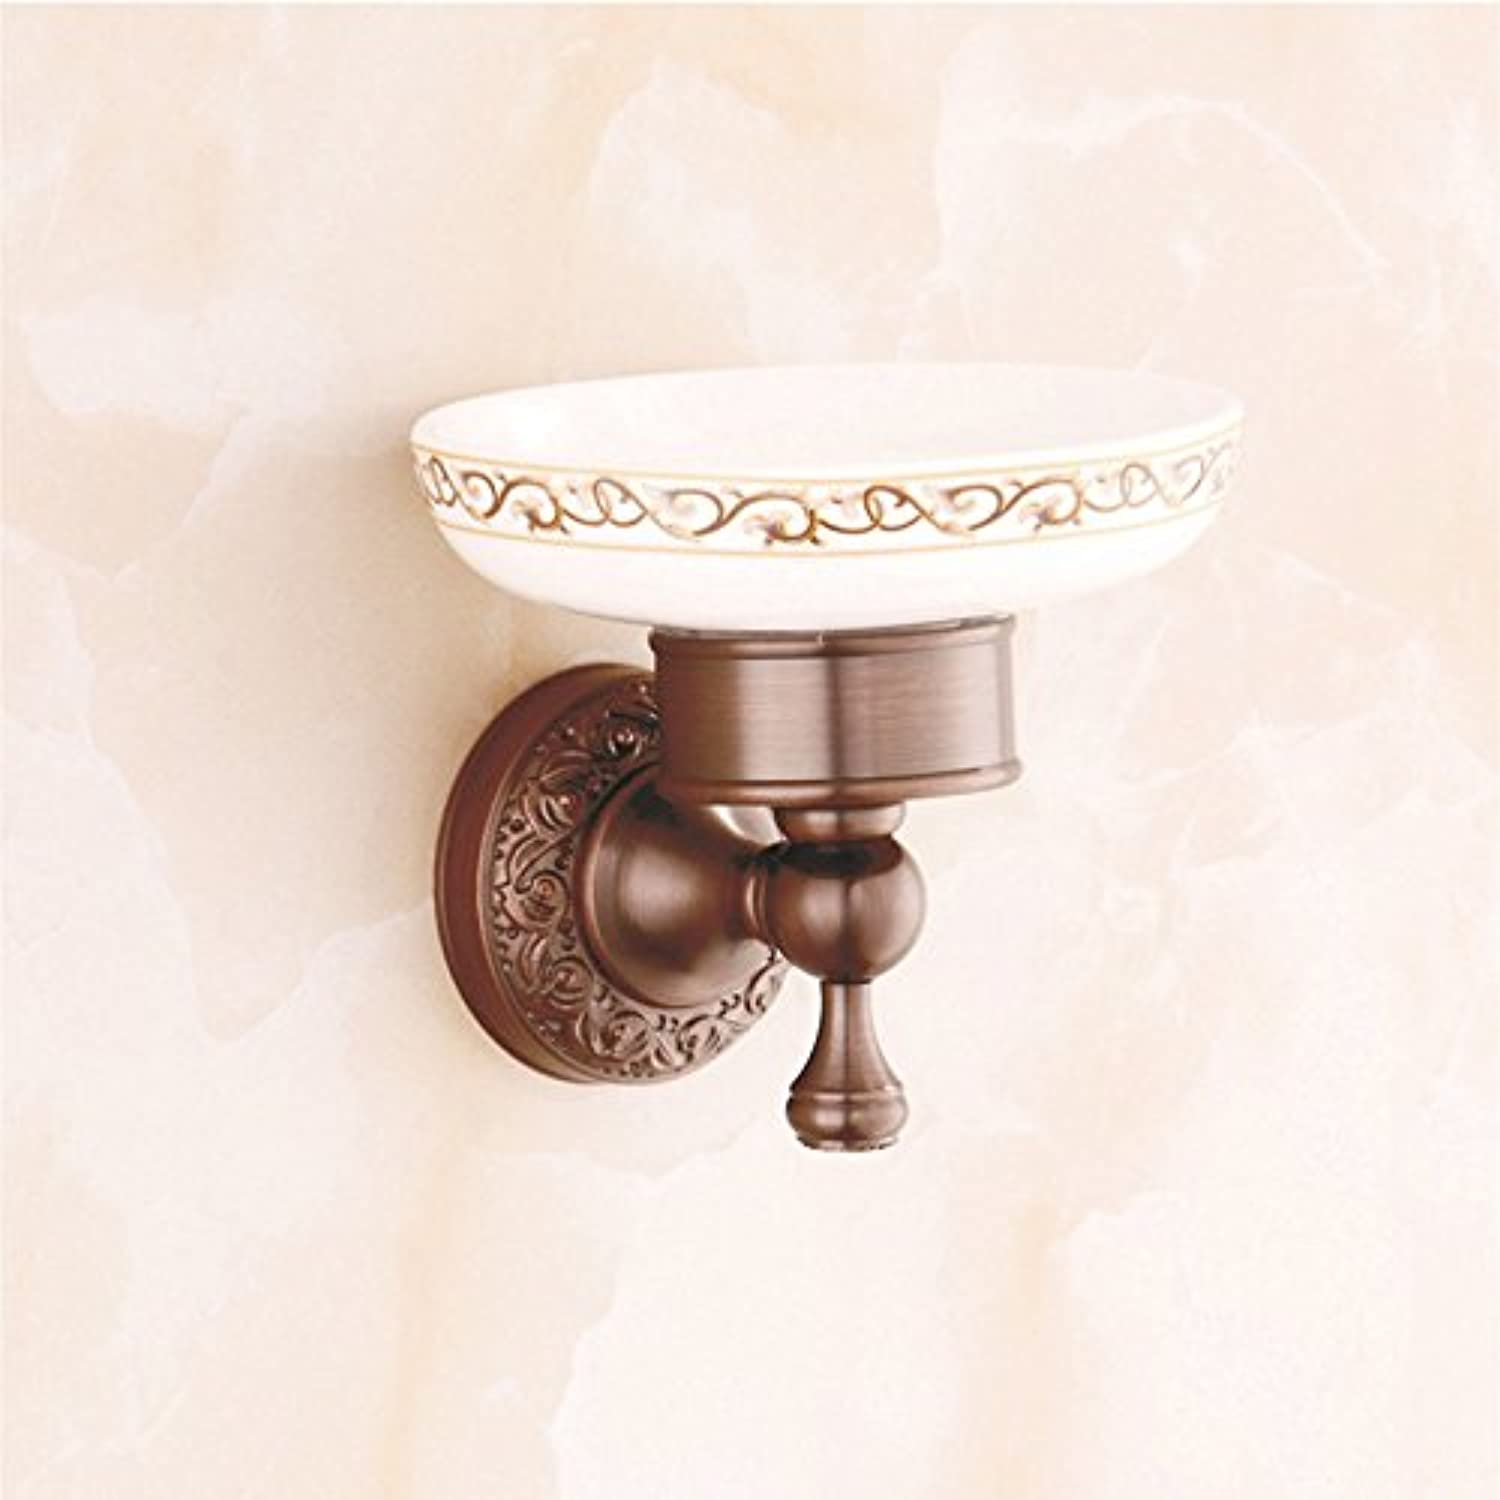 Bathroom Sink Basin Lever Mixer Tap Bathroom Hardware Hangers-Bathroom Hardware Hangers Brown and Old